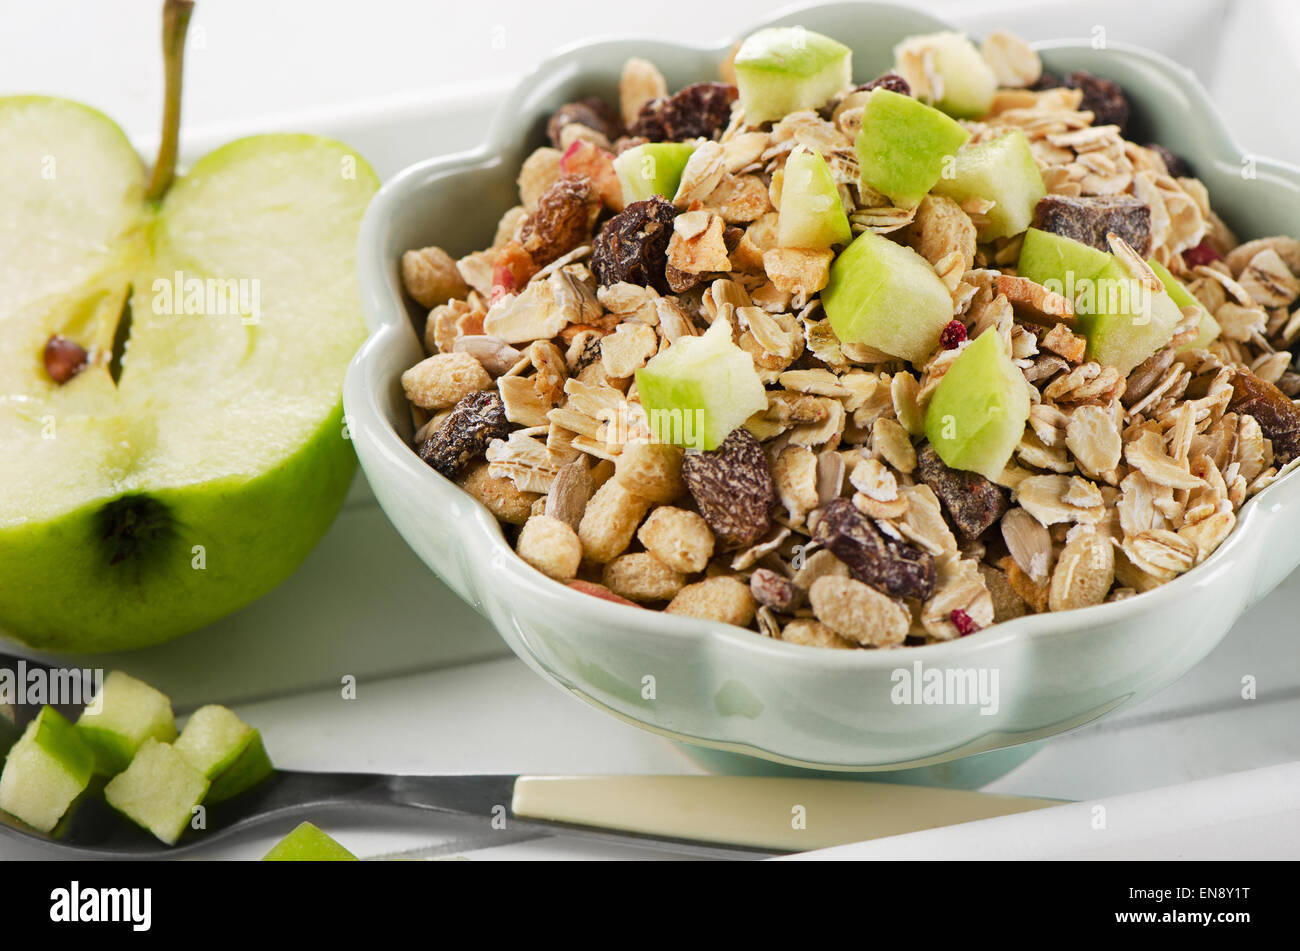 Healthy bowl of muesli, green apple for a nealthy breakfast - Stock Image